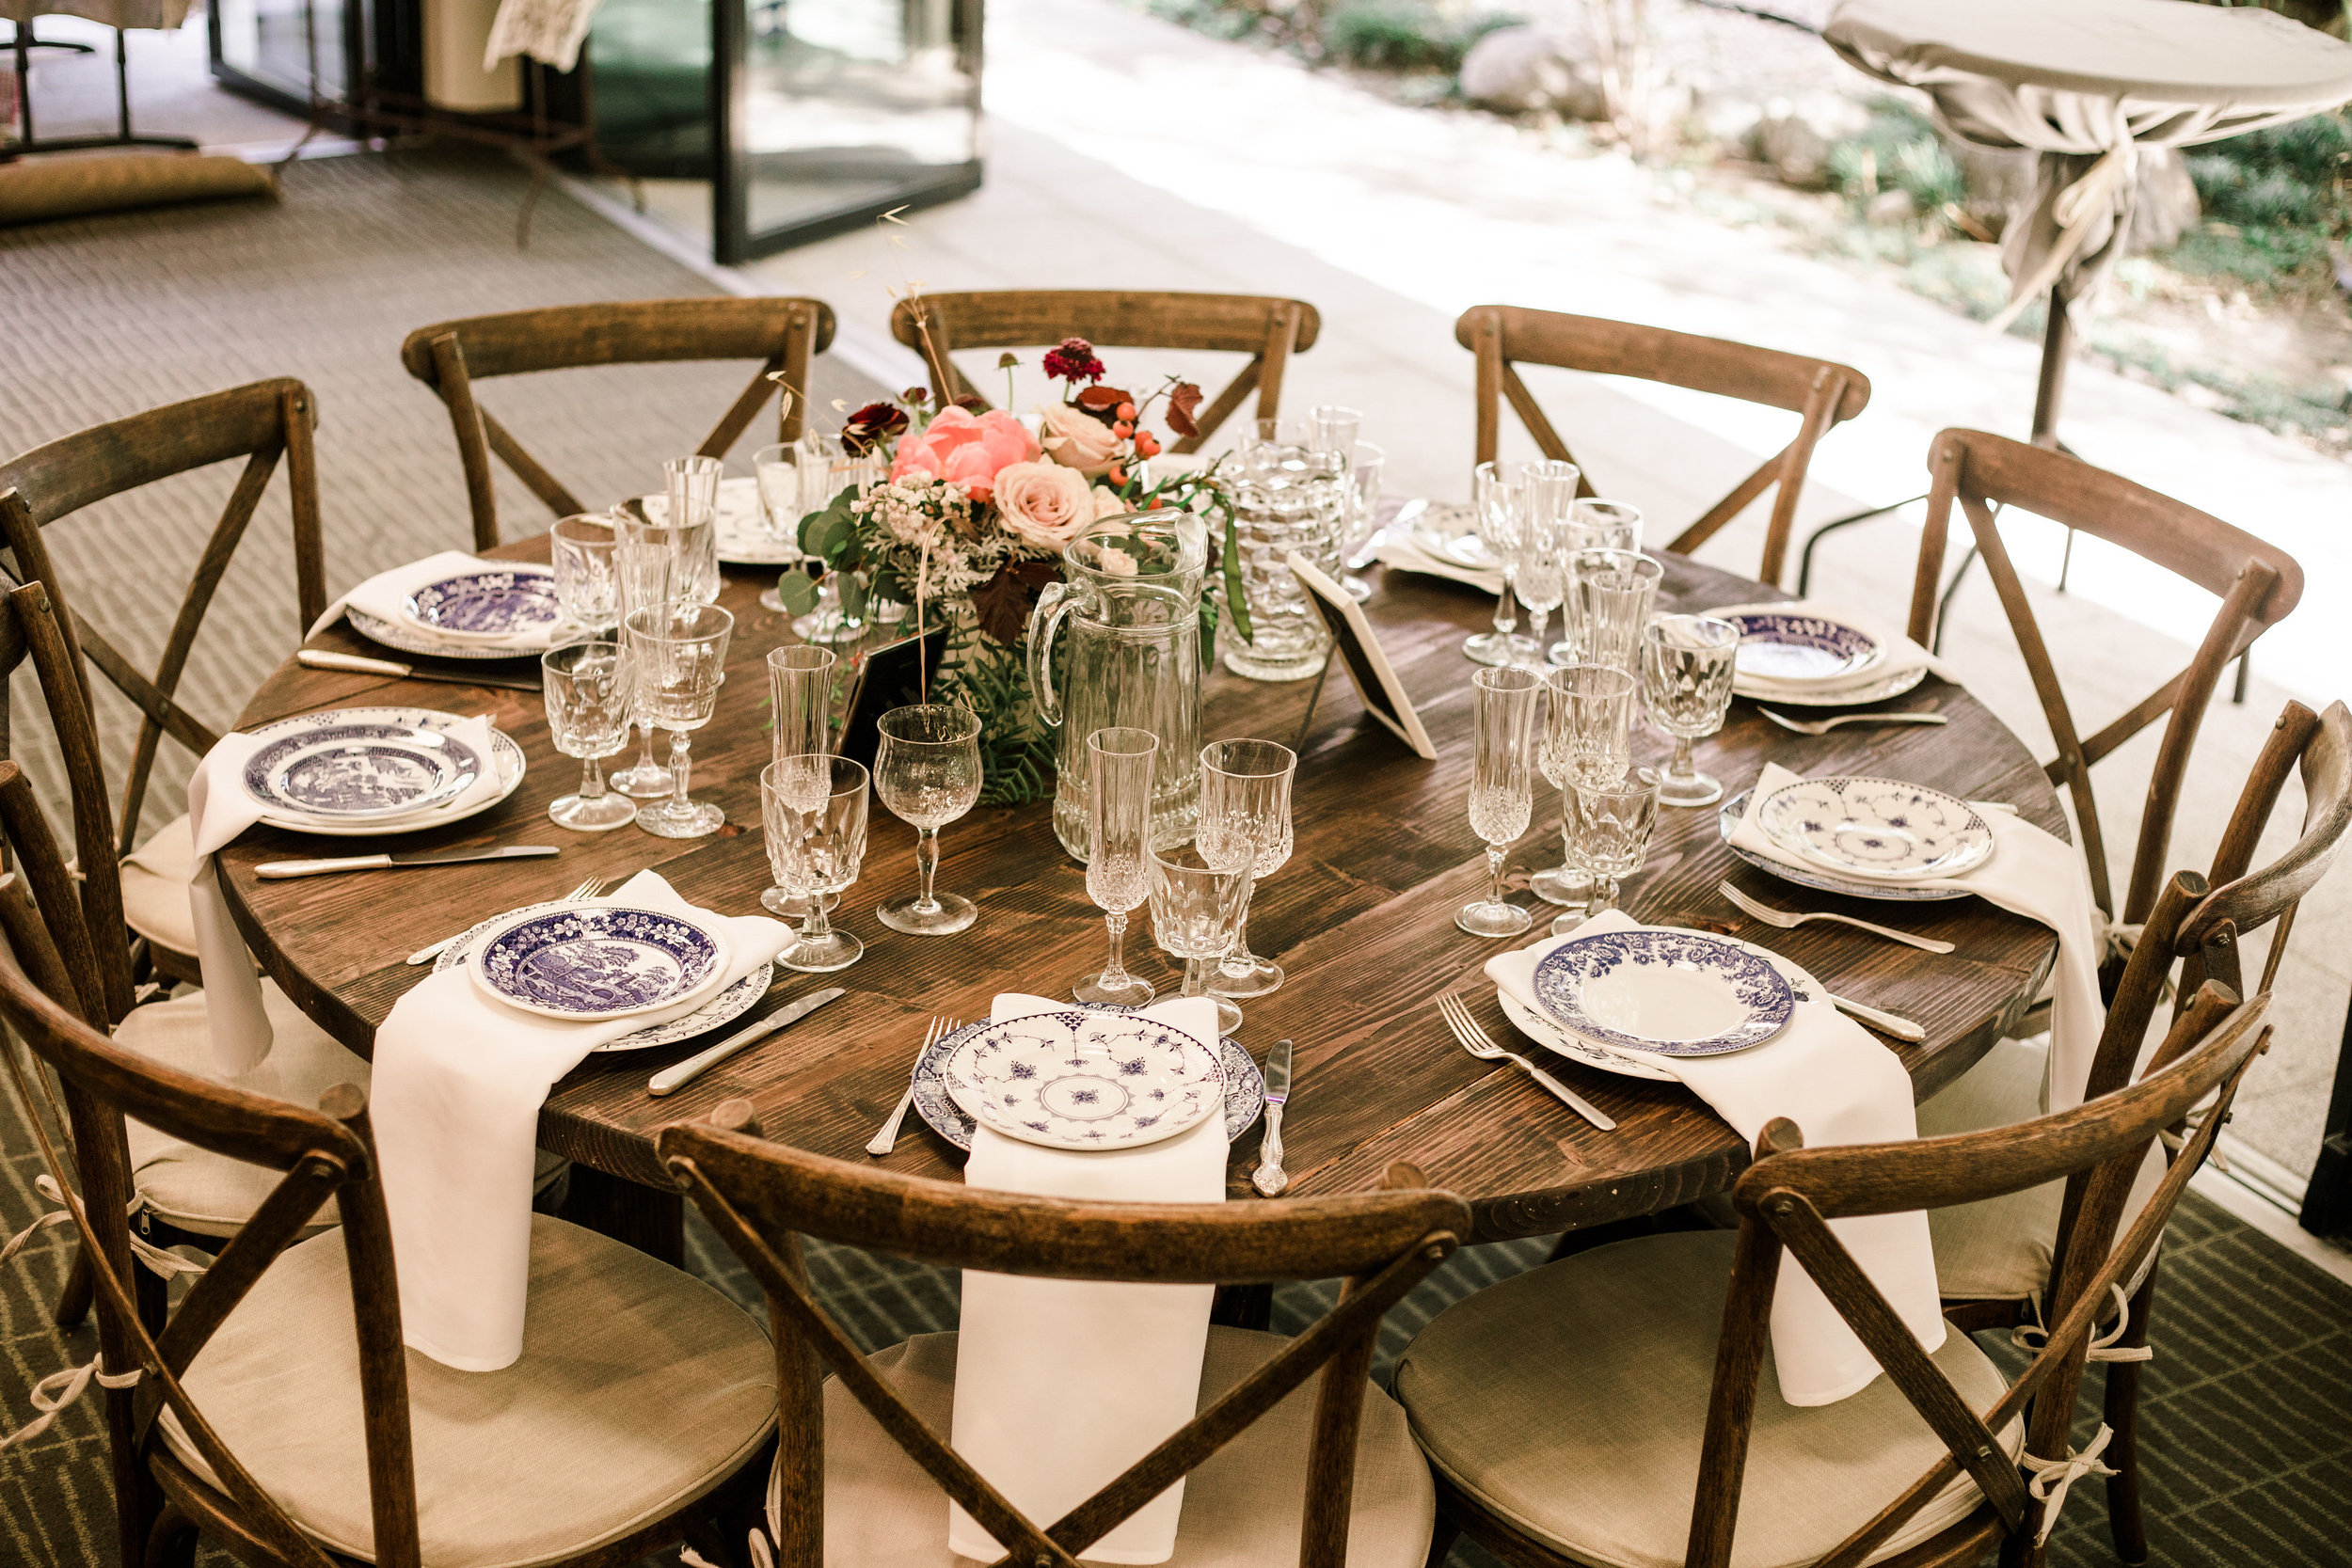 Table scape- Photo: Elyana Ivette